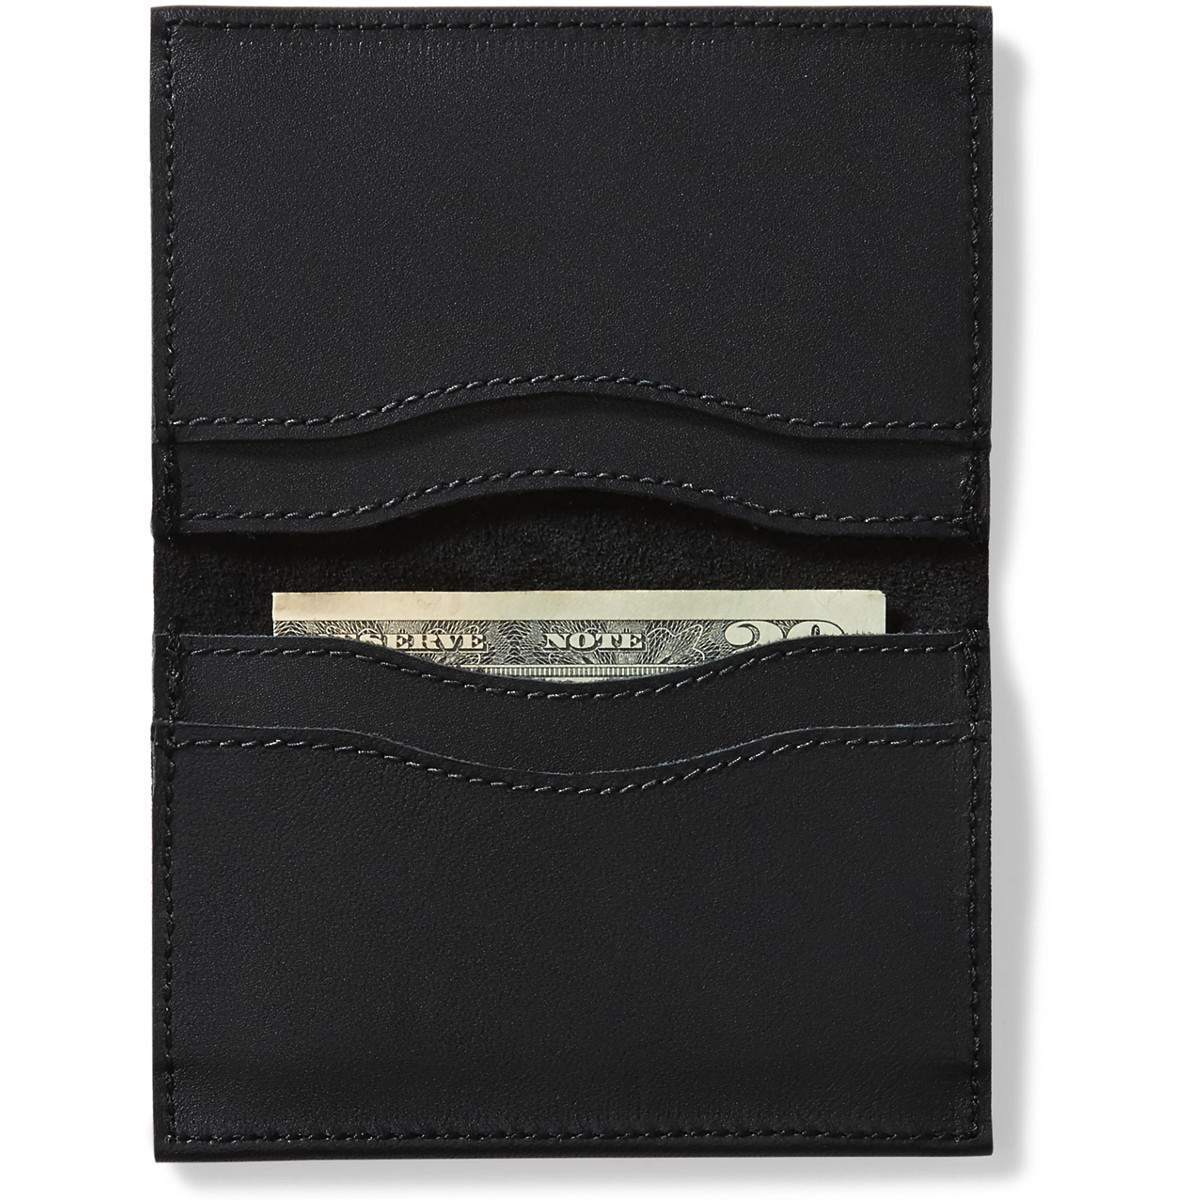 Danner Leather Wallet - Black thumbnail